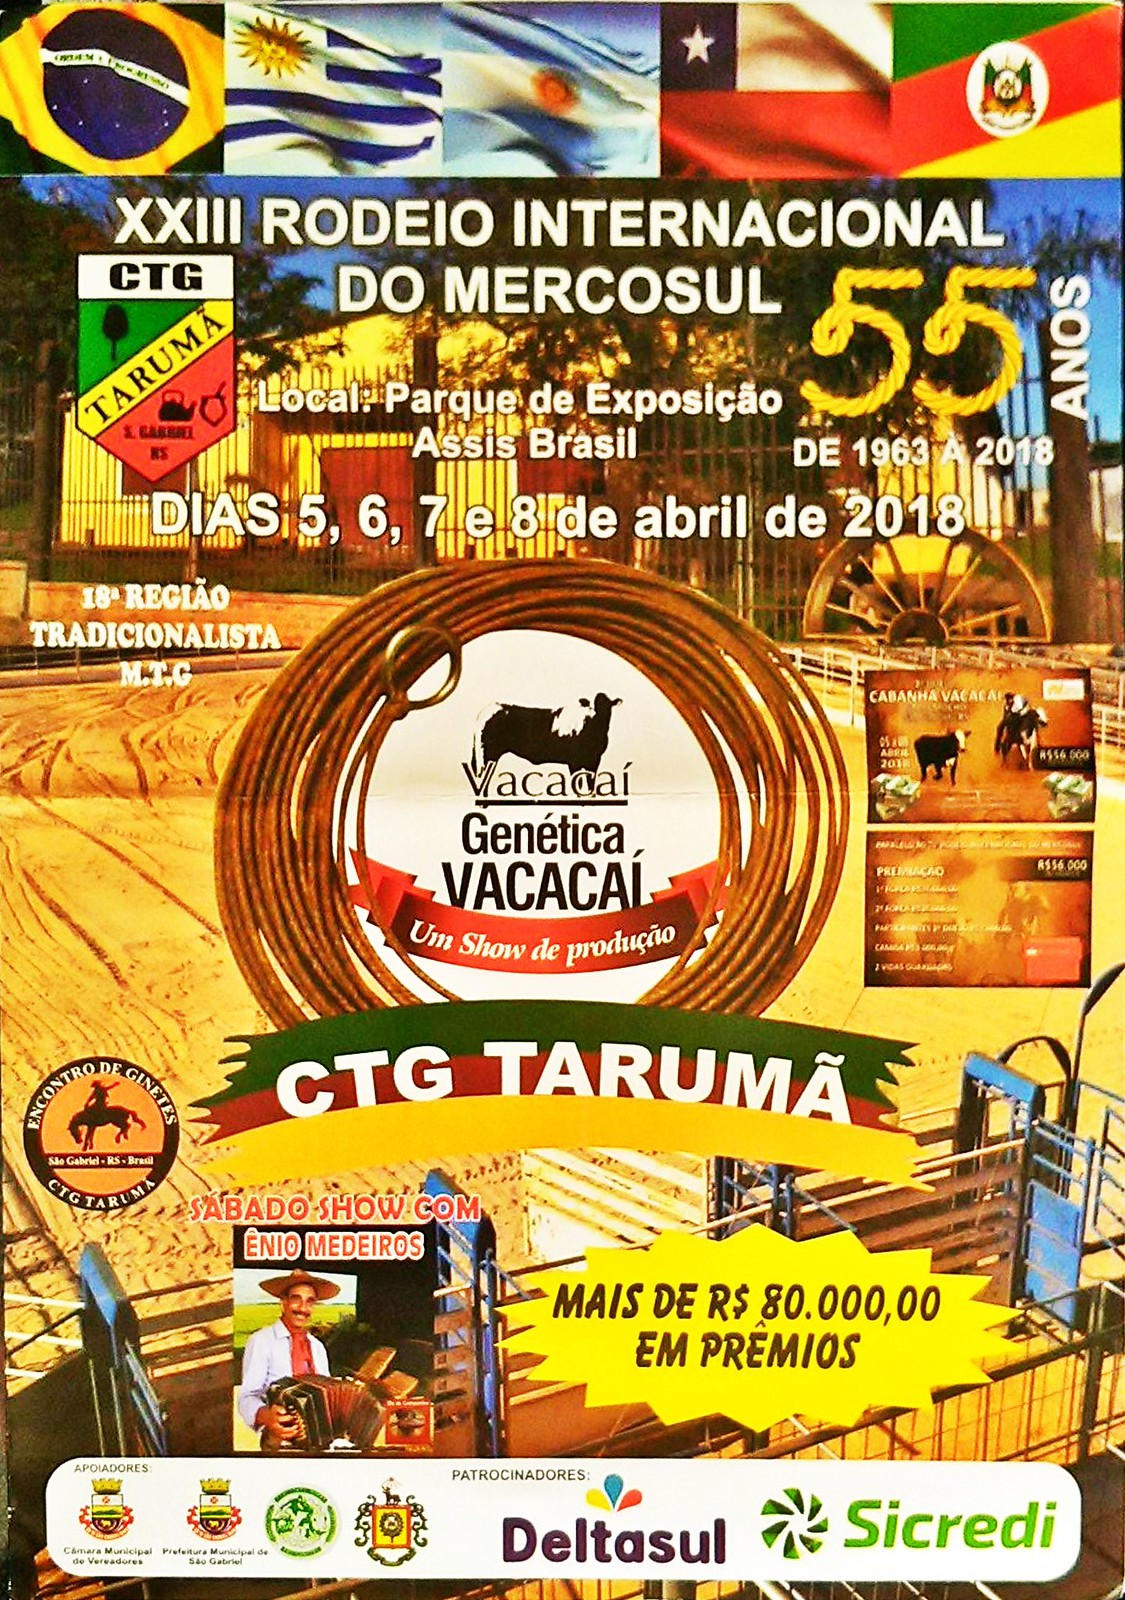 Rodeio Internacional do Mercosul